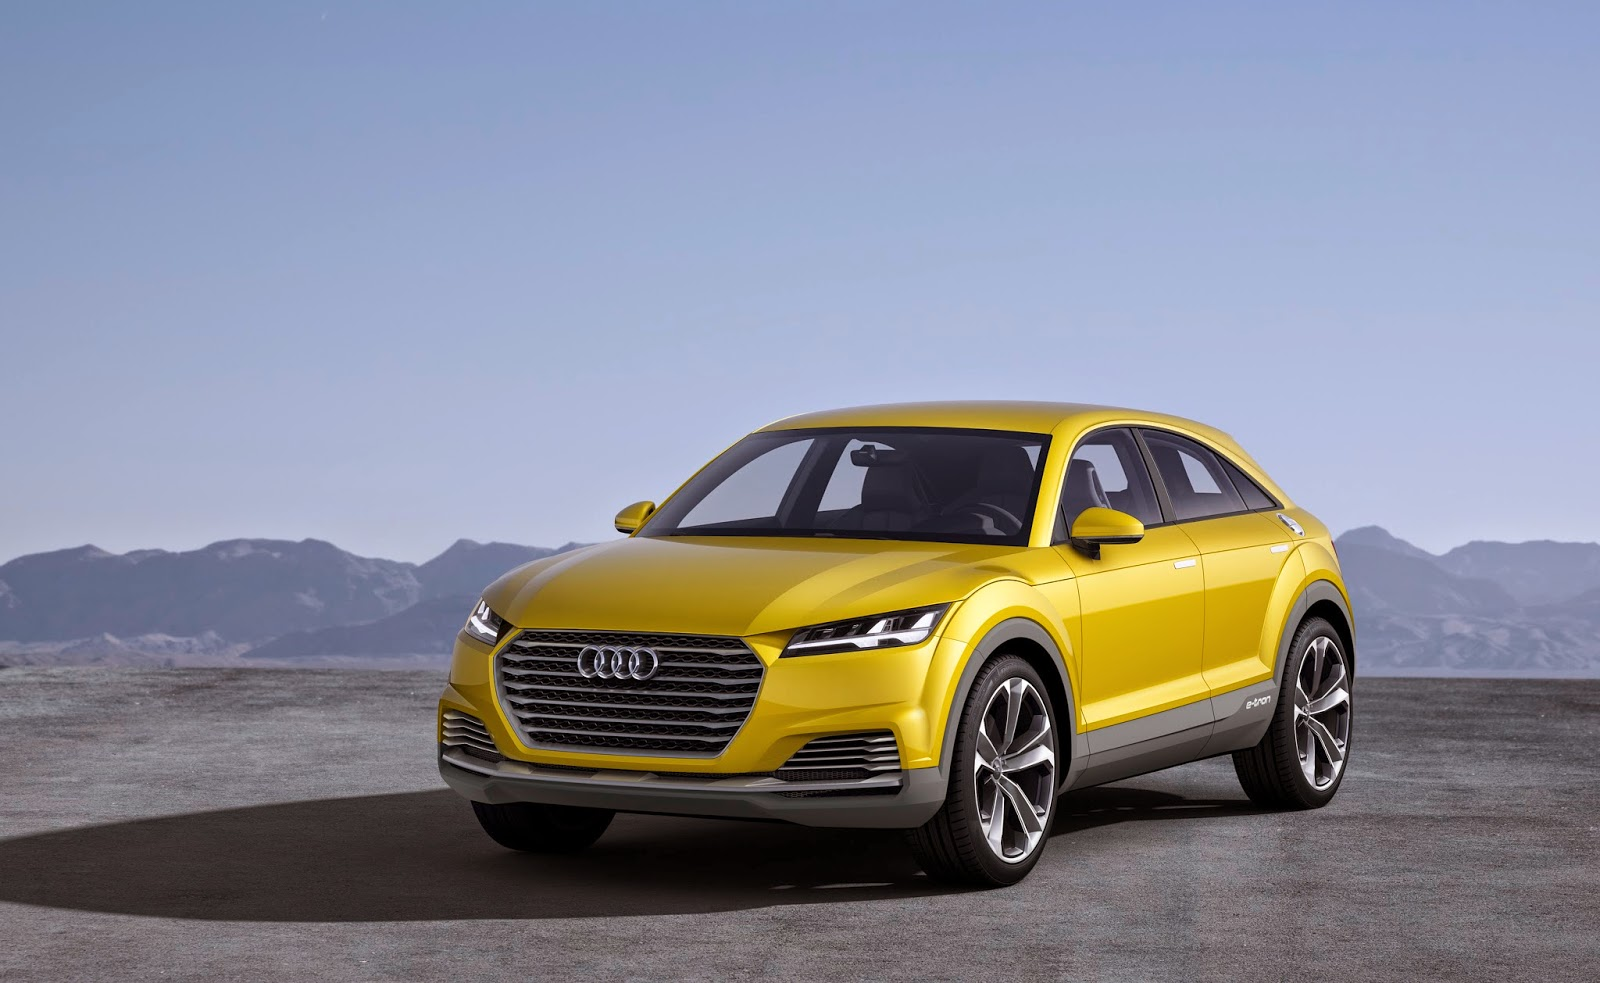 audi unveil tt plug in hybrid suv concept car video electric vehicle news. Black Bedroom Furniture Sets. Home Design Ideas